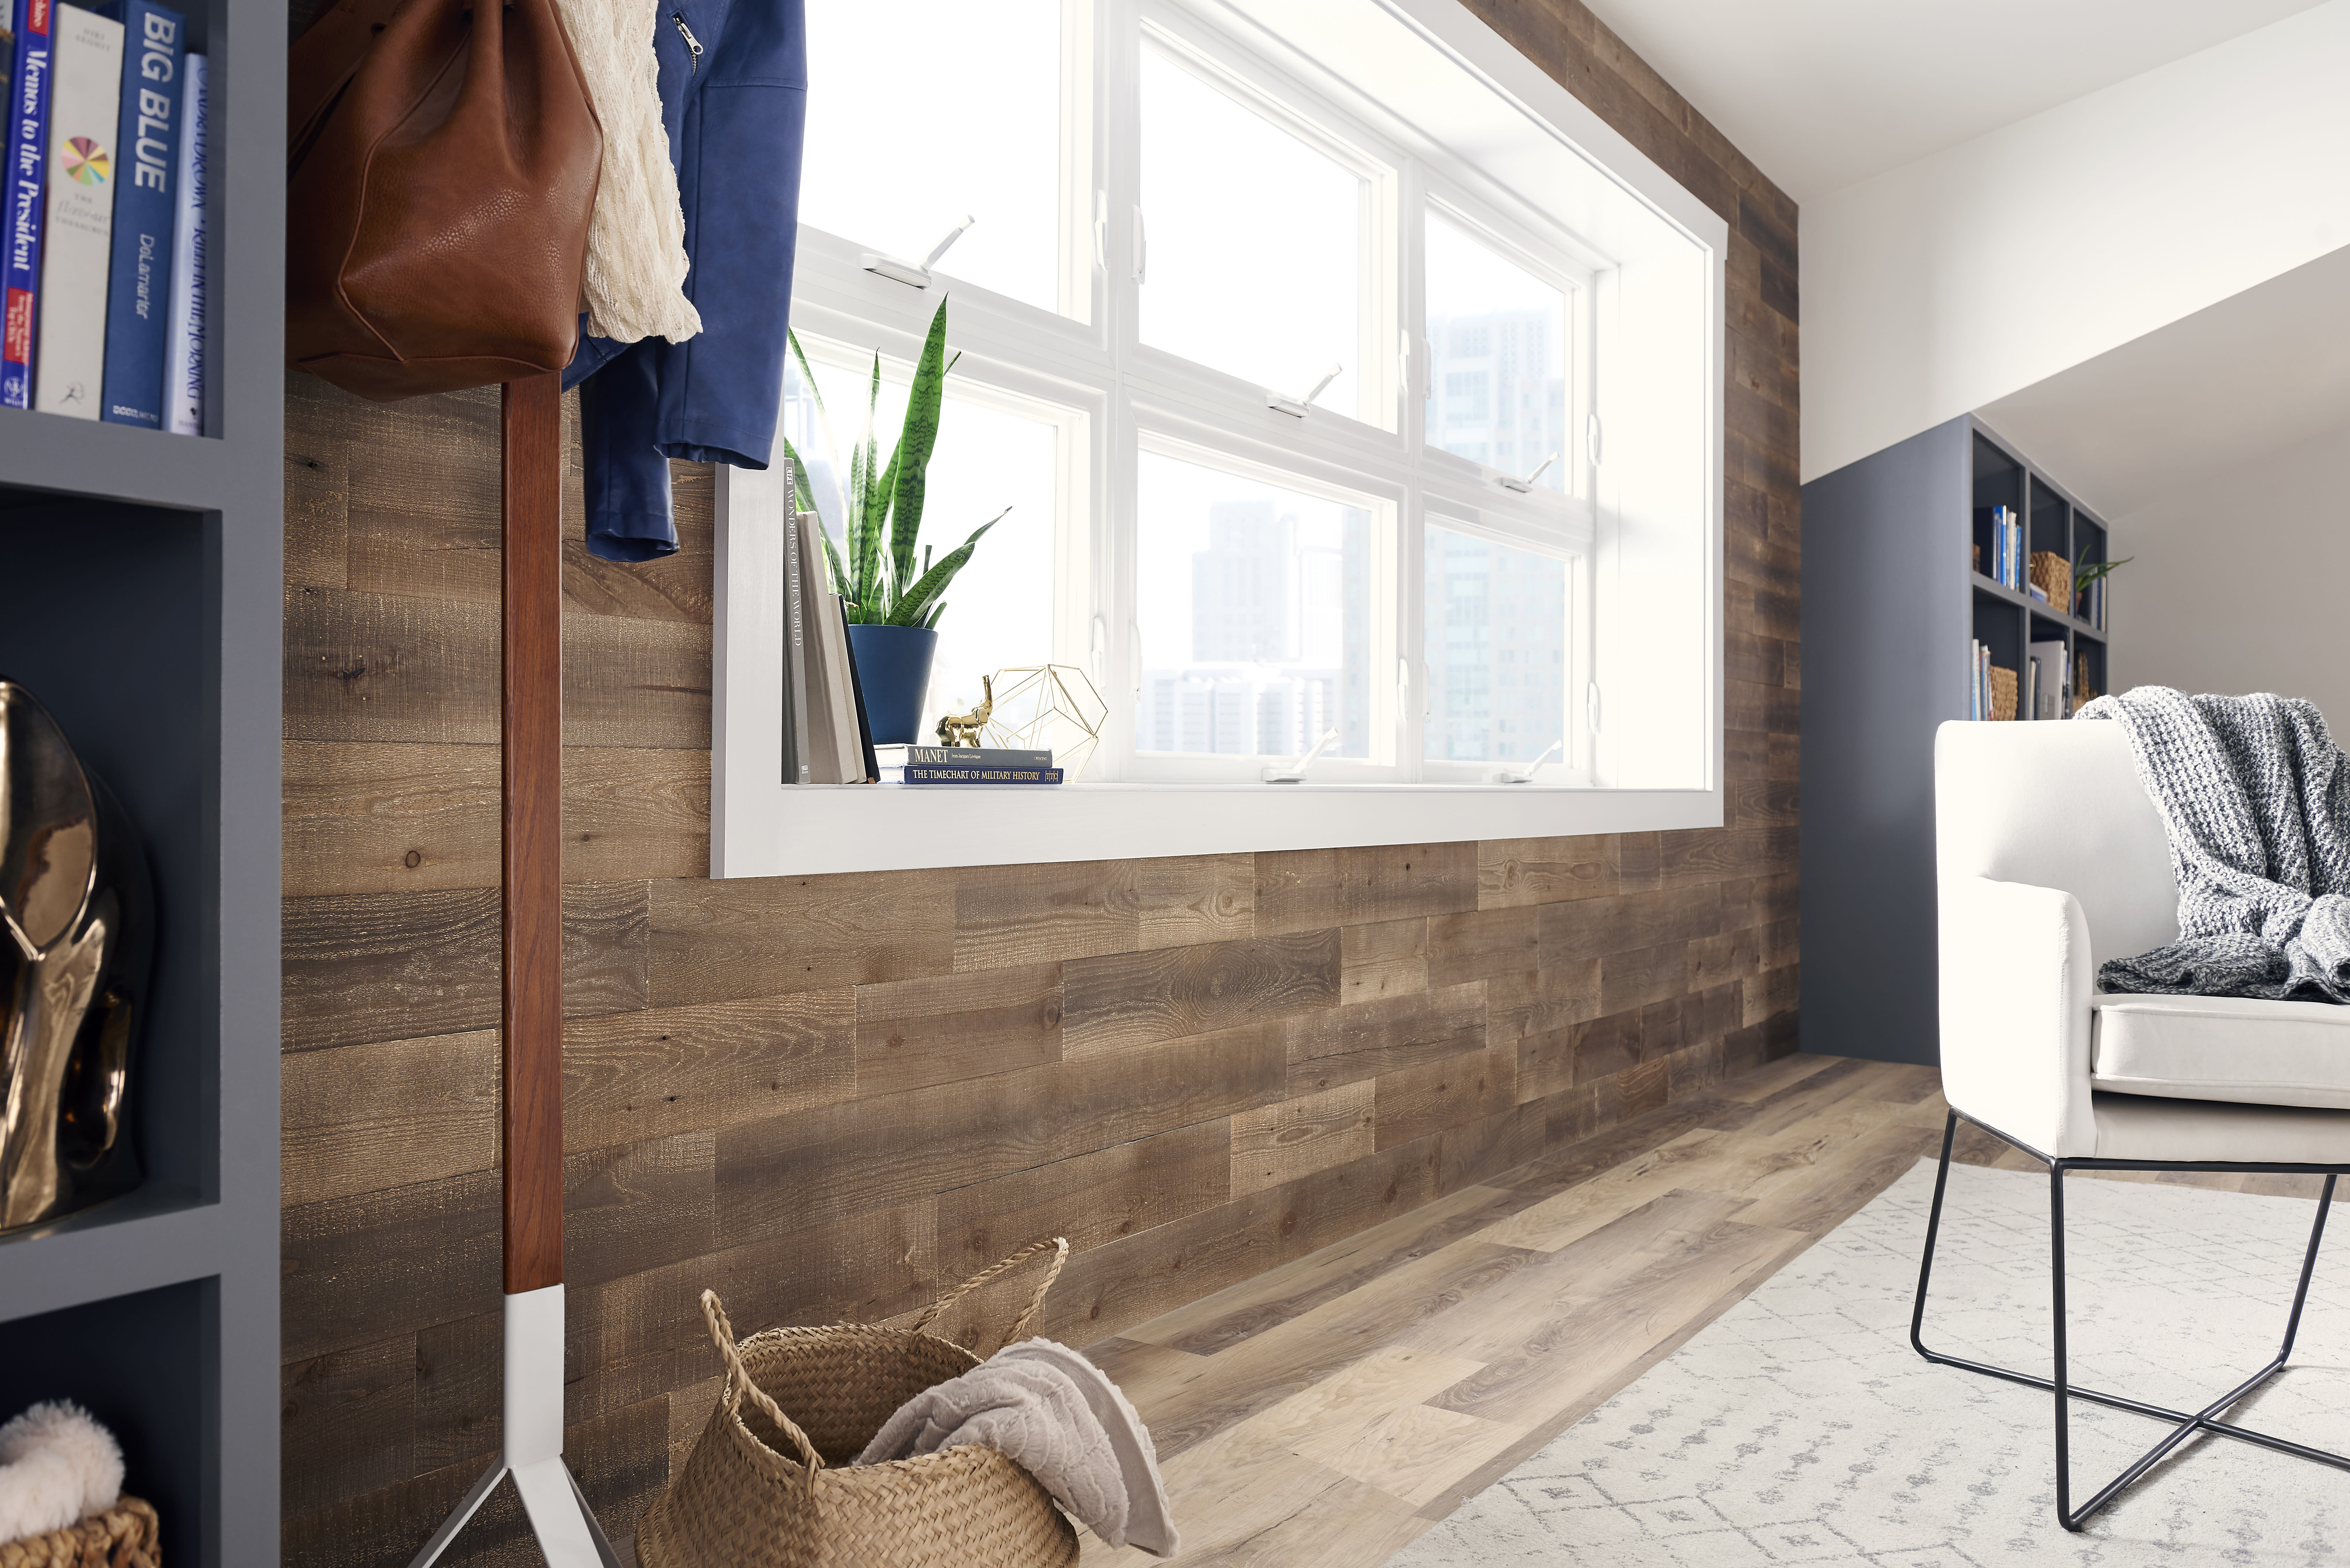 Reclaimed wood accent wall in a home office featuring Stikwood reclaimed peel and stick planks in a brown color called Hazelnut.